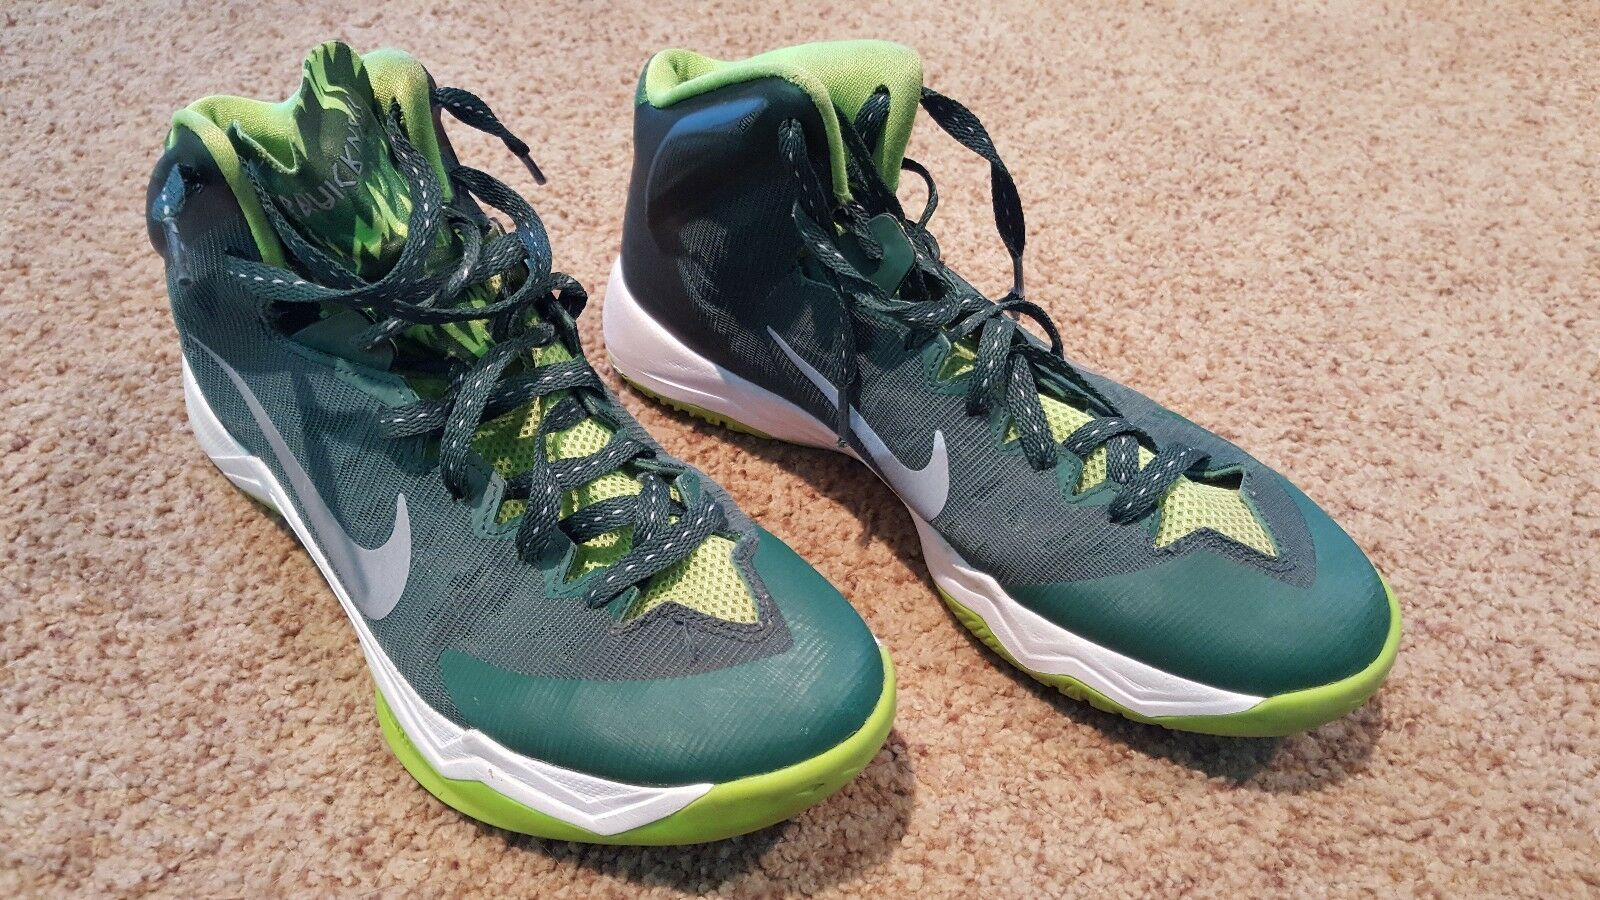 Nike Zoom Hyperquickness GRFX Shoes Men's Size 8.5 Basketball Shoes GRFX 616865-300 cb99ad